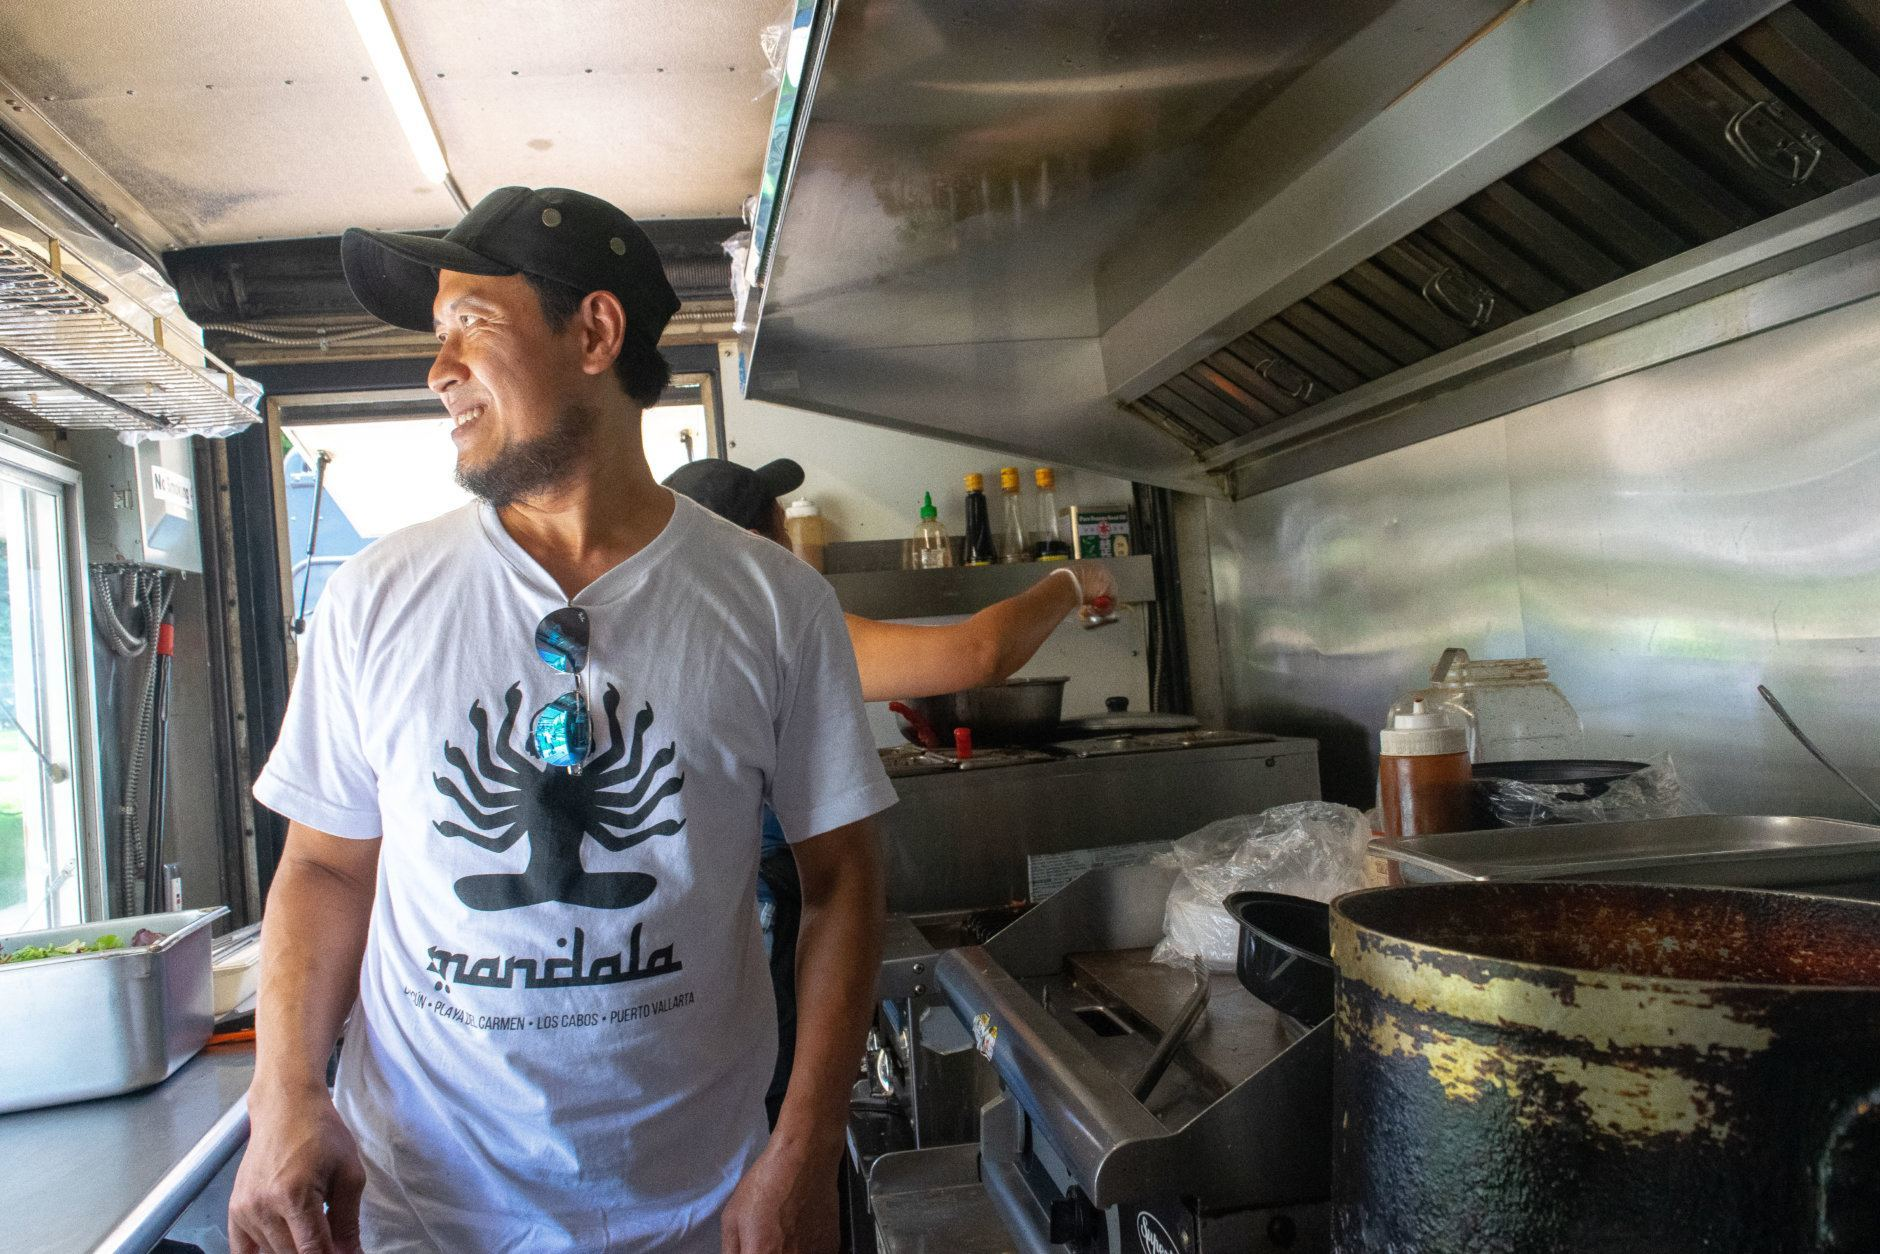 "<p><span style=""font-weight: 400;"">Setiantoko's biggest sellers are the spicy beef curry and chicken sate, and on a busy lunch rush in Farragut Square, he'll fill nearly 100 orders for those dishes and others that he learned to make from his mother and grandmother.  </span></p> <p><span style=""font-weight: 400;"">""I do what they did in Indonesia, so the flavor and the taste is just pretty much [like] back home. I do not modify [the food] in any way,"" Setiantoko said.</span></p>"